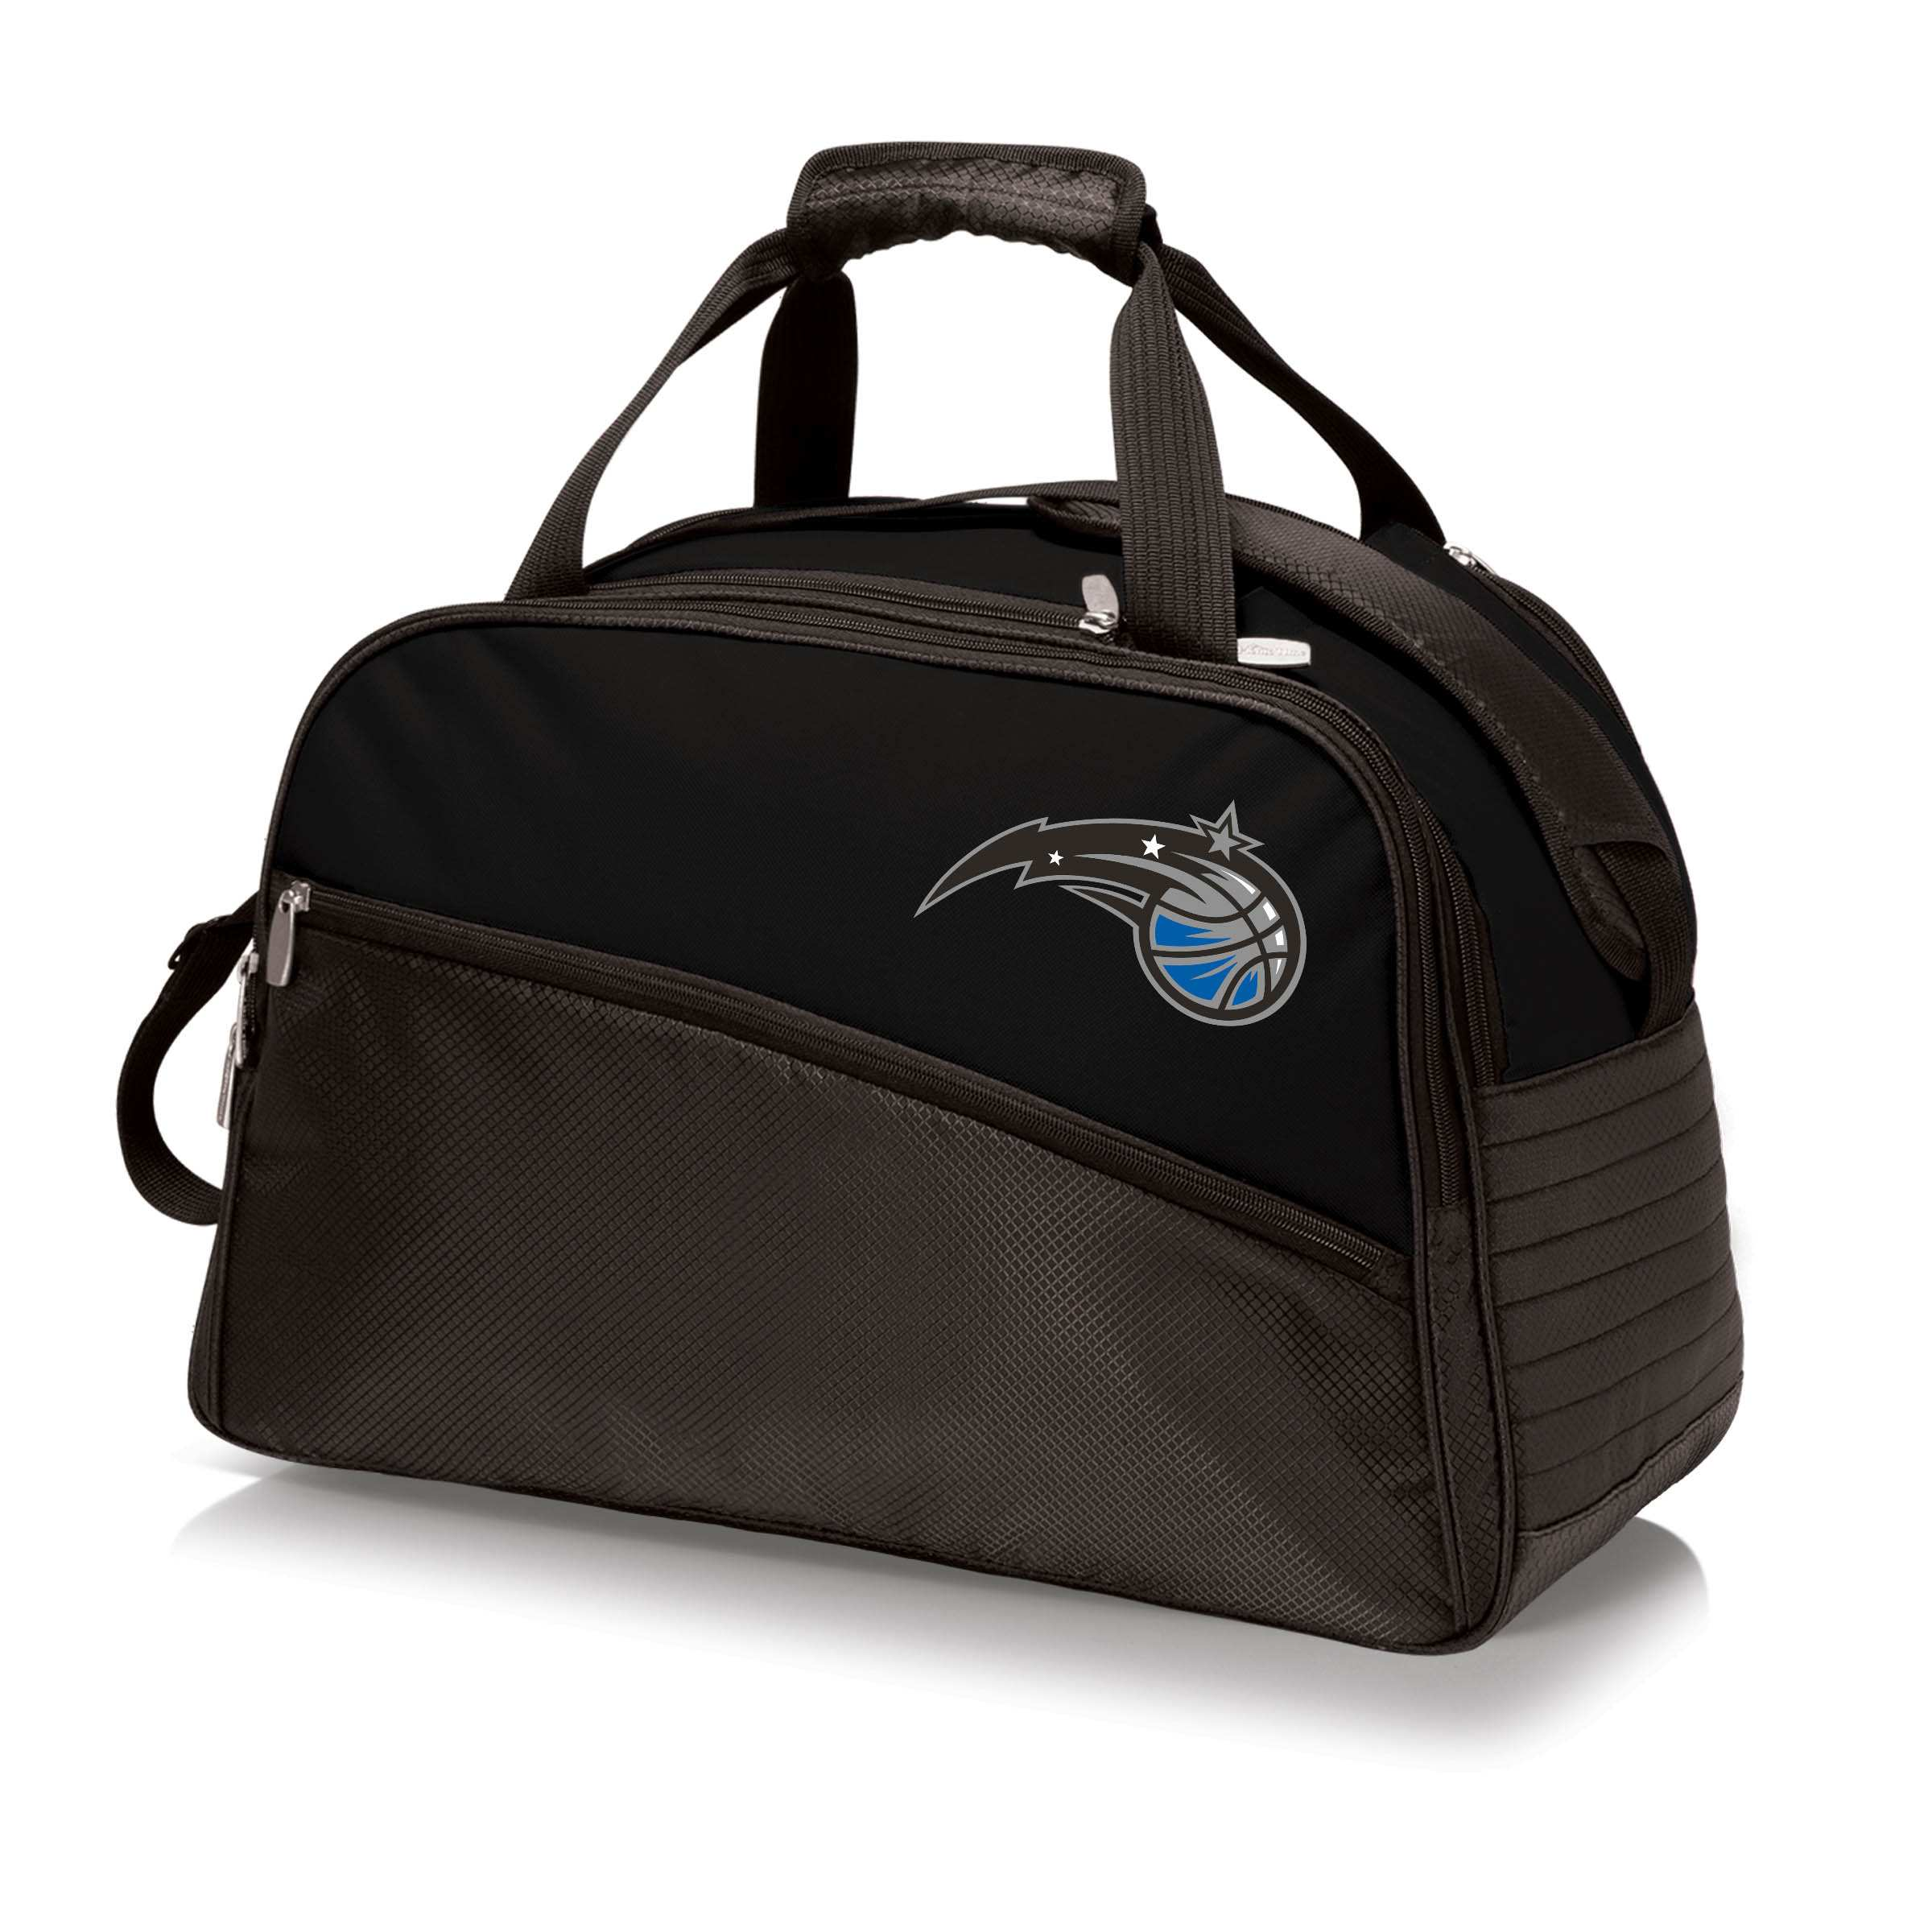 Picnic Time Nba Stratus Orlando Magic